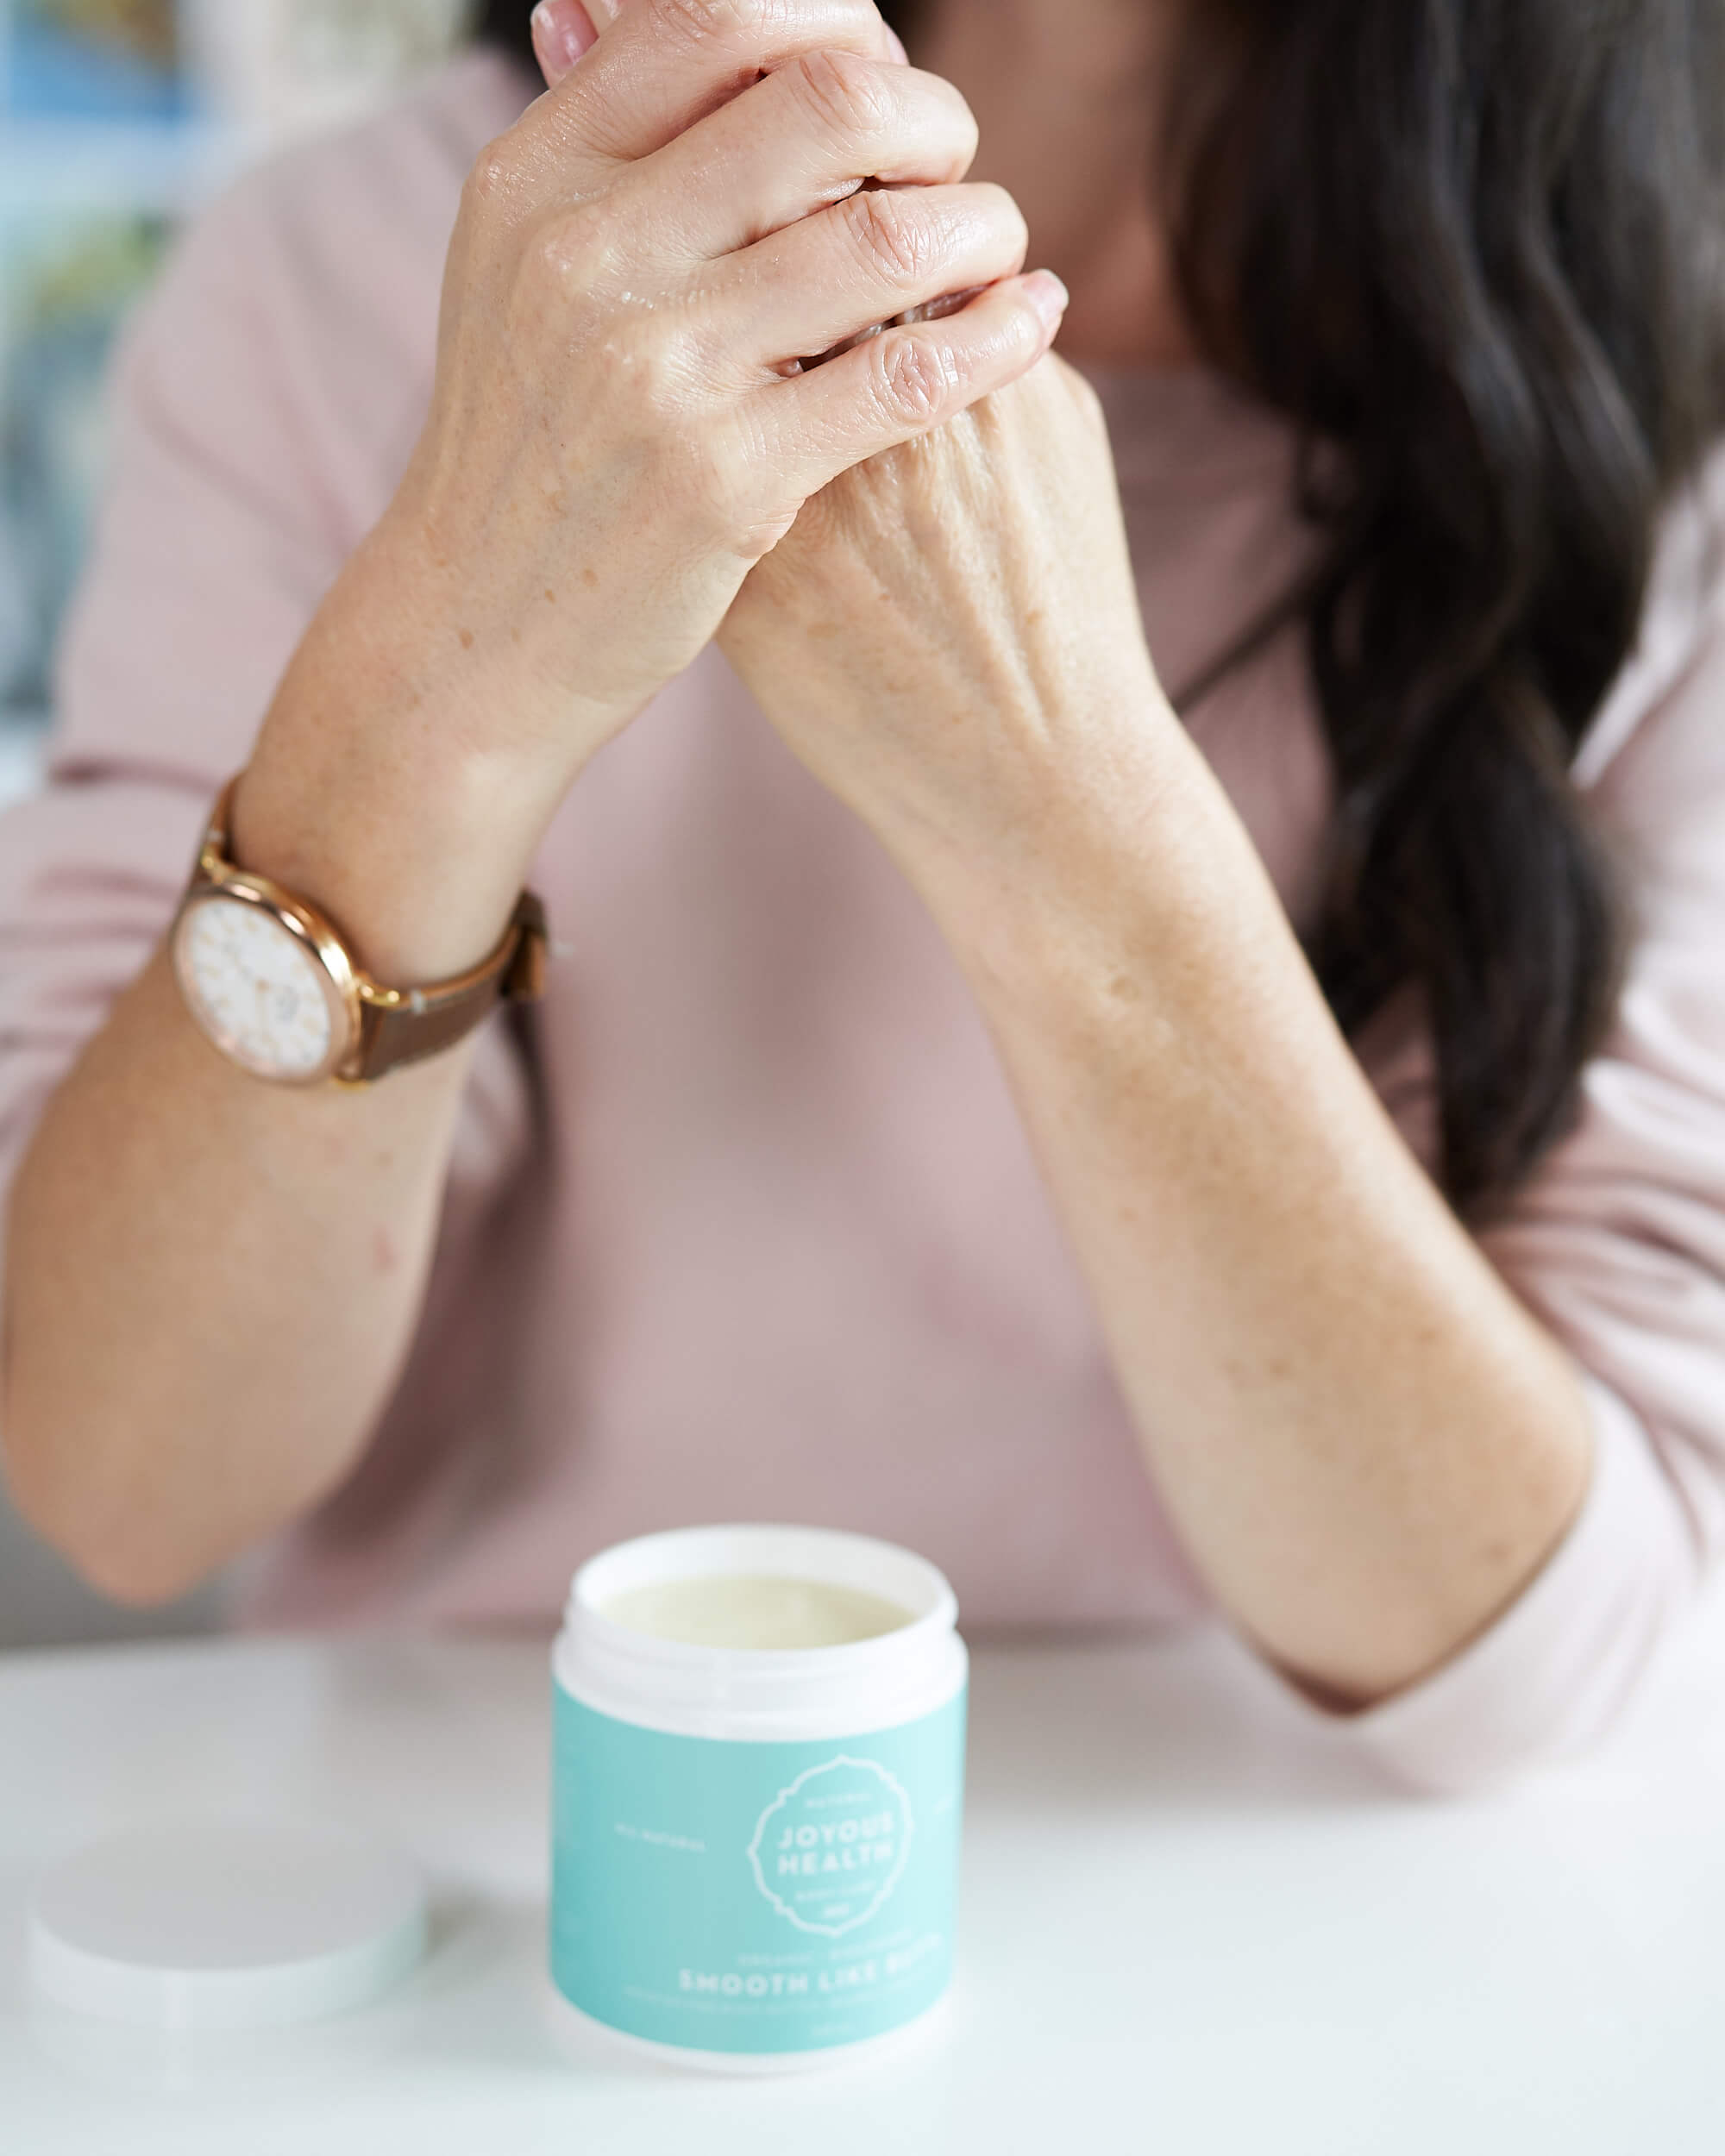 Woman with dark hair putting on hand cream.